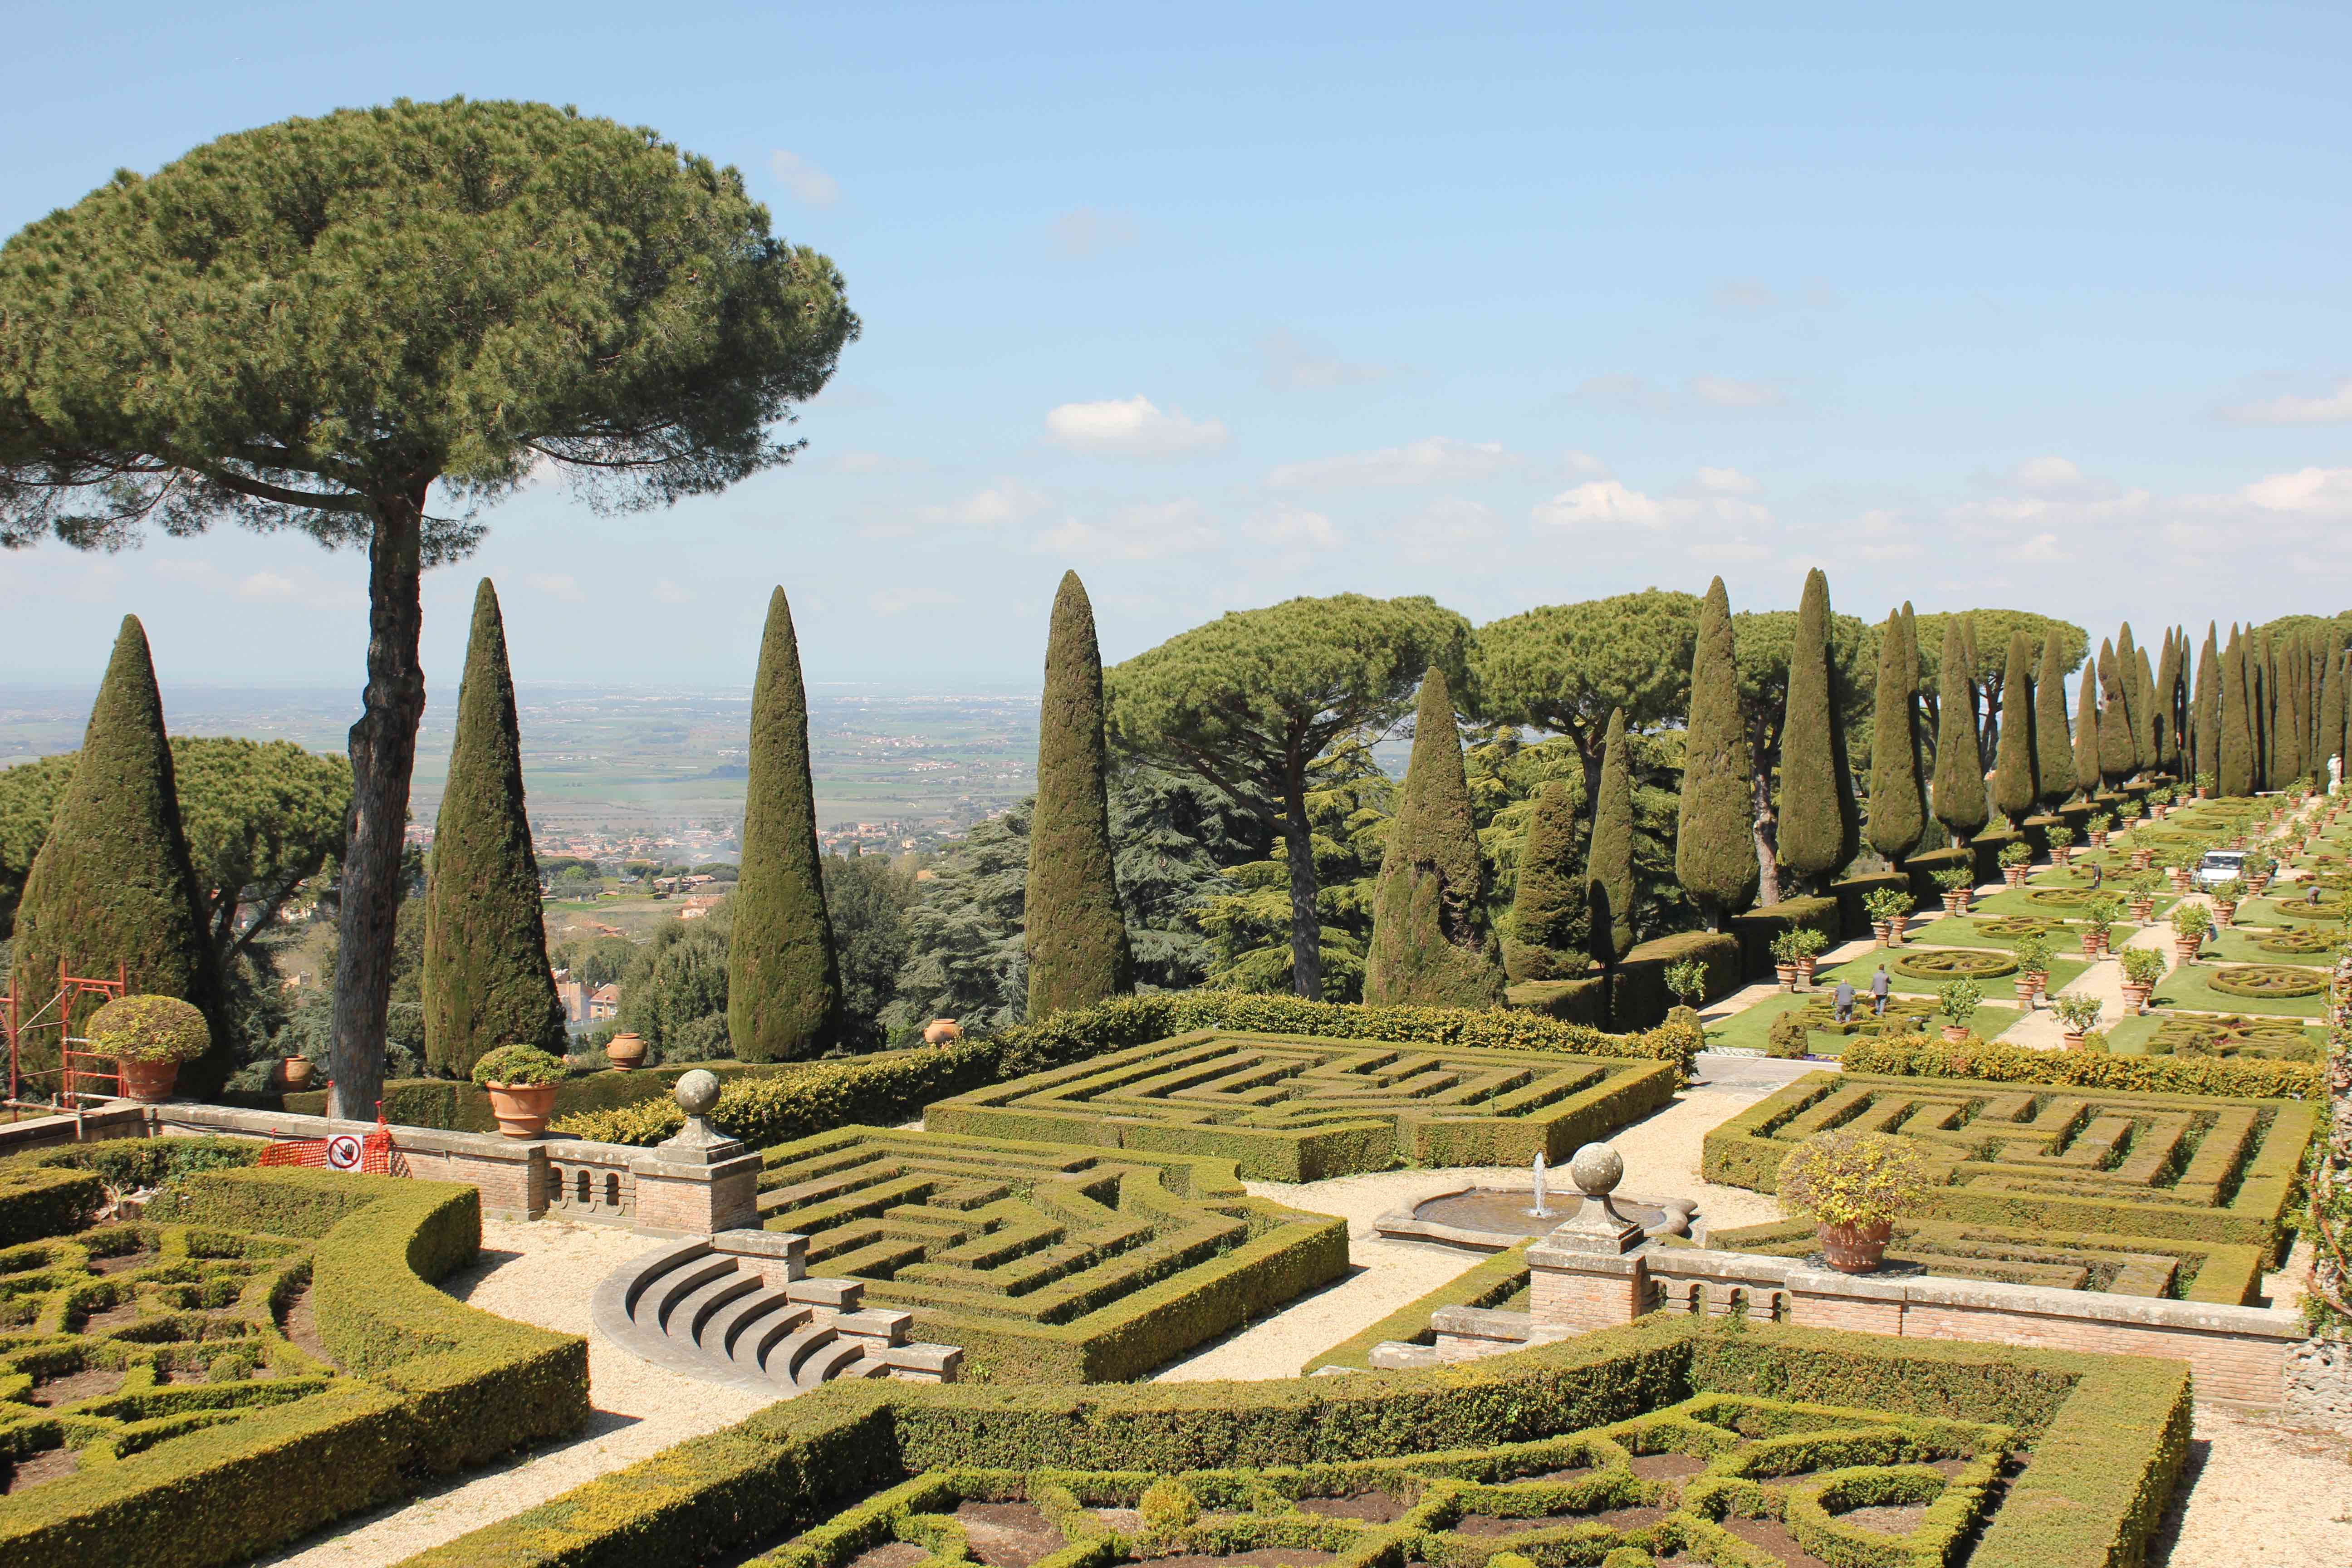 Castel Gandolfo Is The Roman Day Trip You Didn't Know You Needed